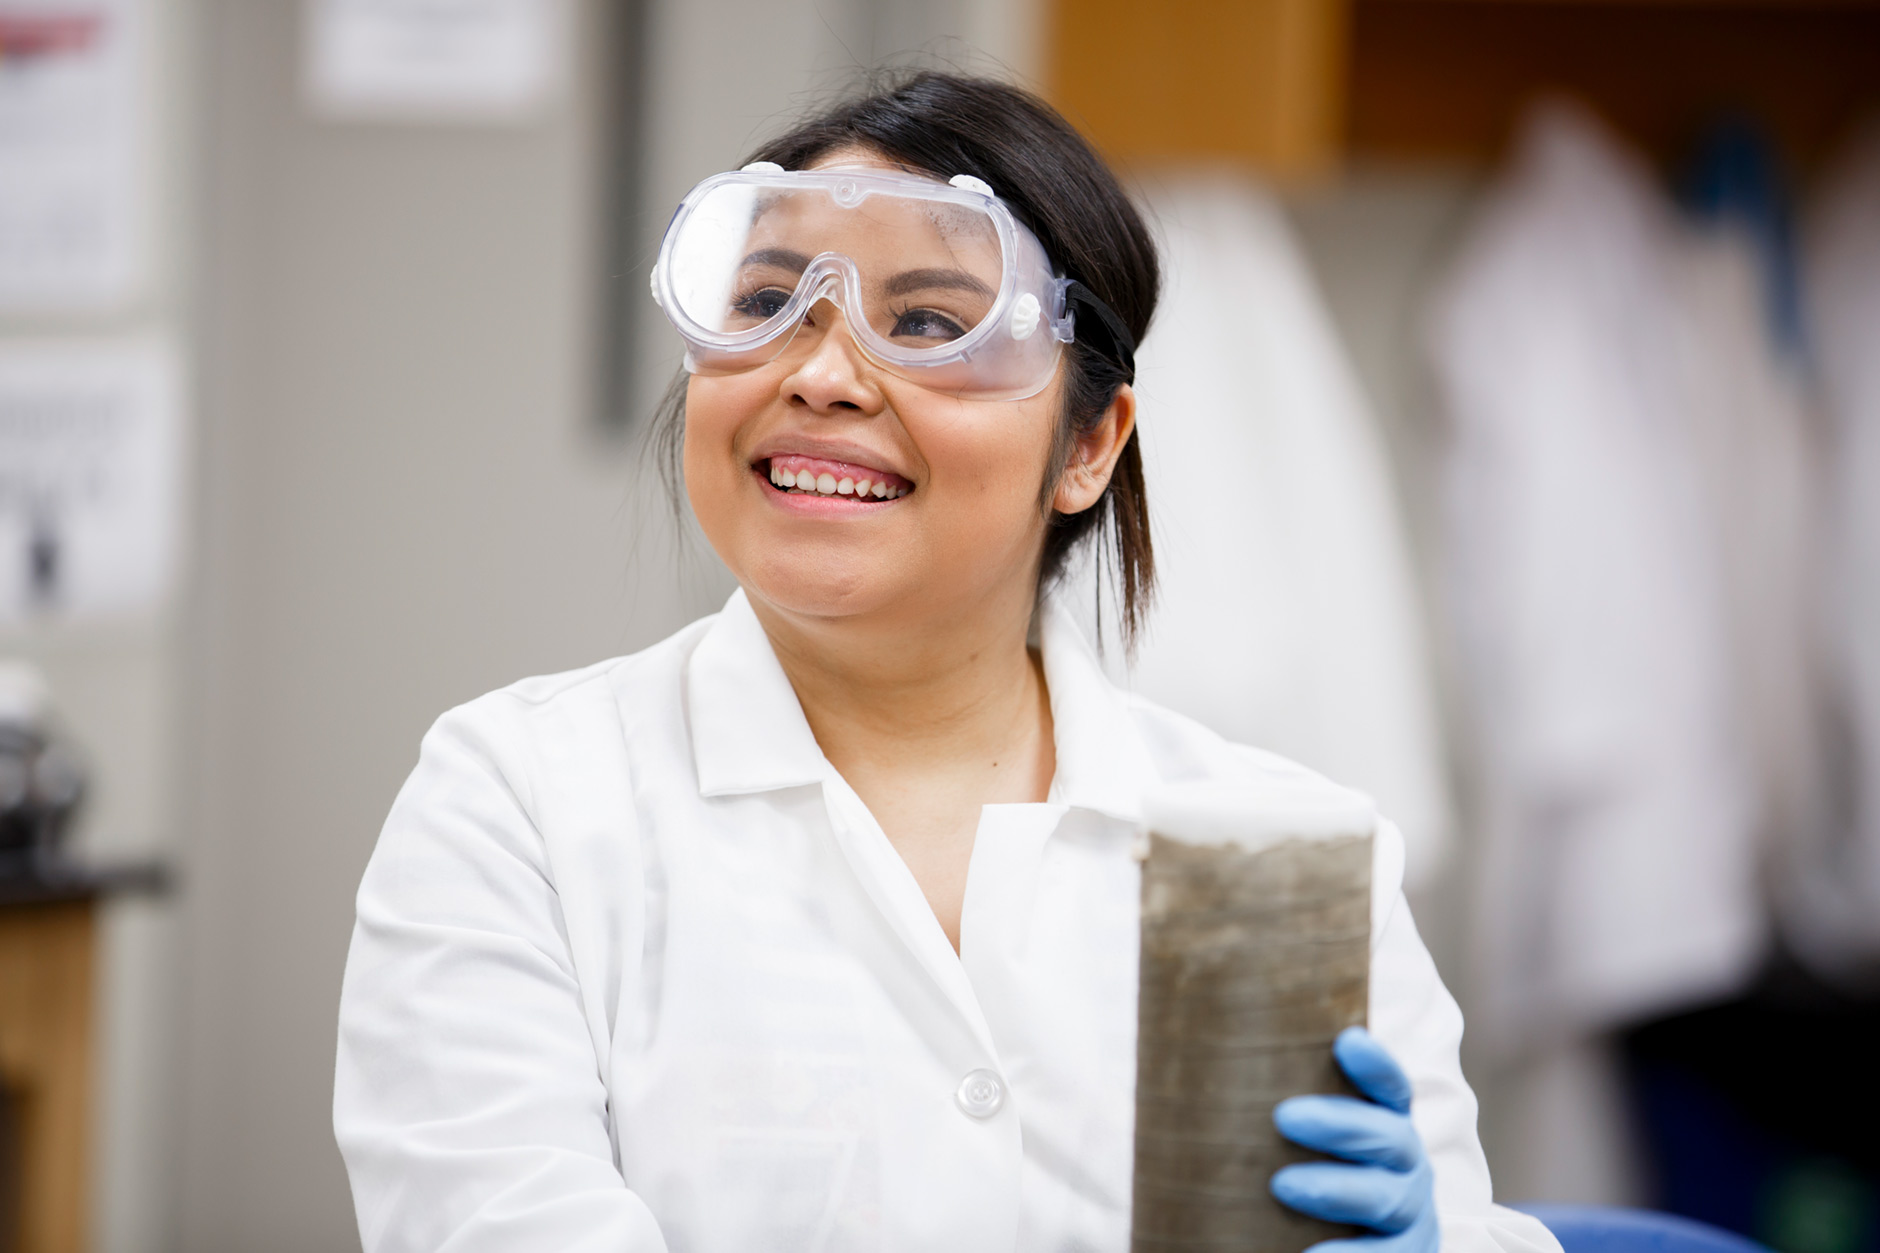 Gabriela Jaimes, a graduating senior at IU Northwest, works in a Chemistry lab on campus on Tuesday, March 20, 2018. (James Brosher/IU Communications)